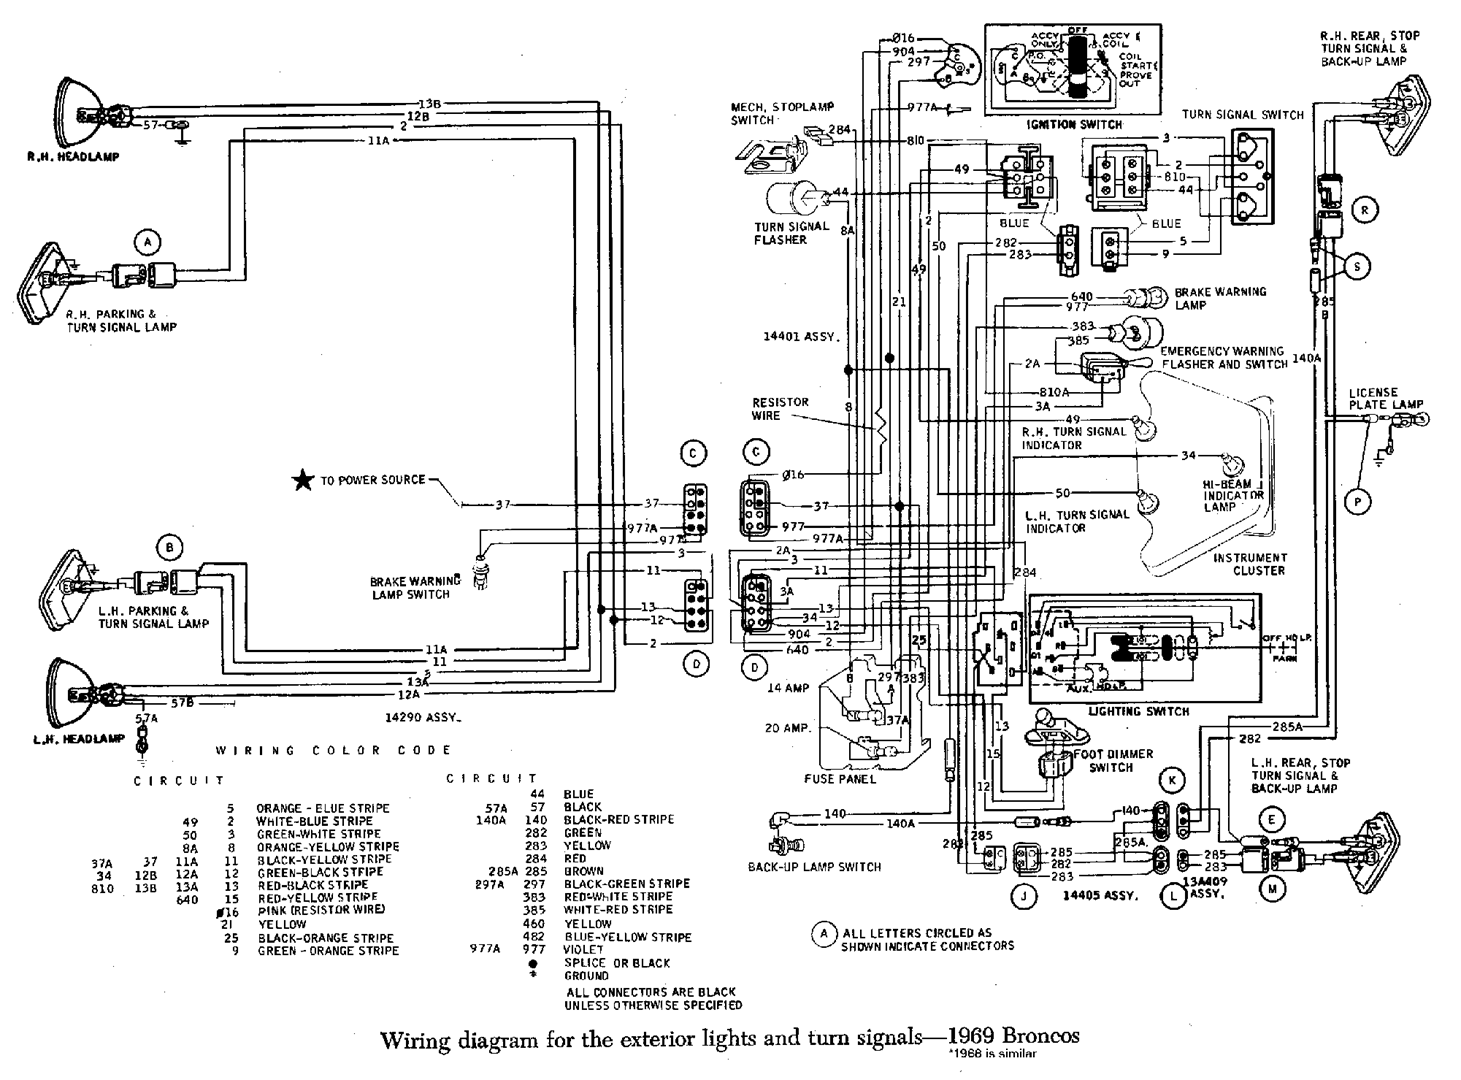 Tech Corner 75 Dodge Truck Wiper Wiring Diagram I Found A Vacuum Chart Specifically For Broncos In California